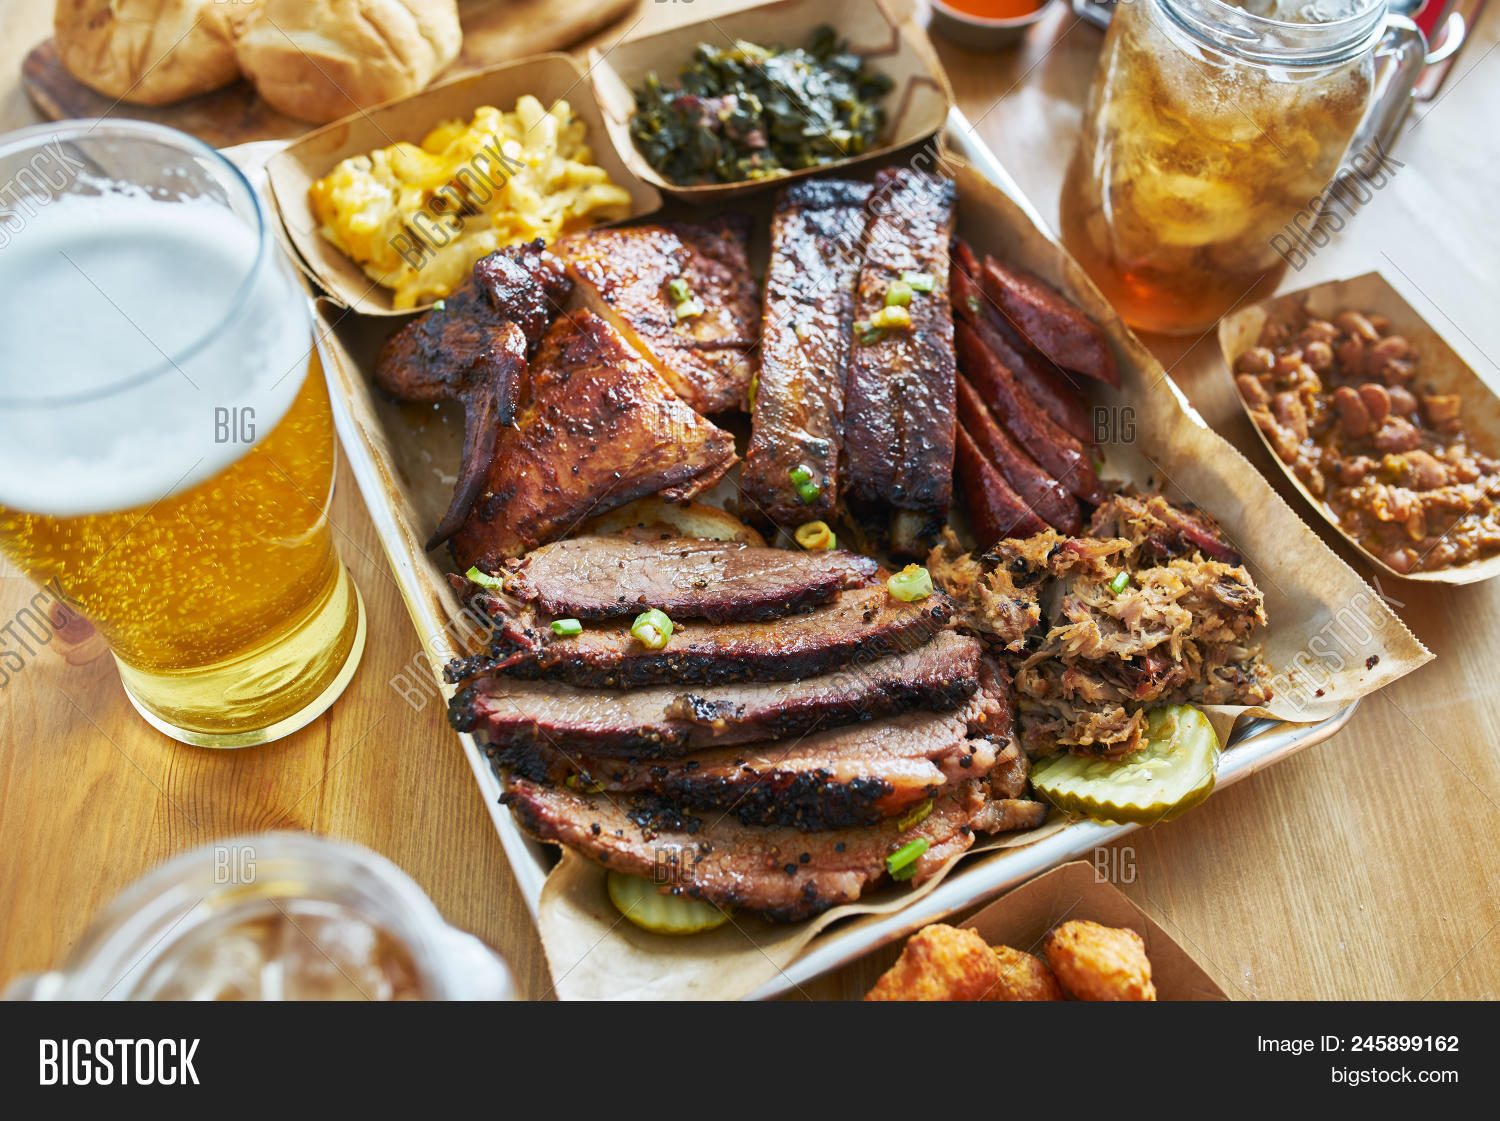 Texas Style Bbq Tray With Smoked Brisket St Louis Ribs Pulled Pork Chicken Hot Links And Sides Image Stock Photo 245899162